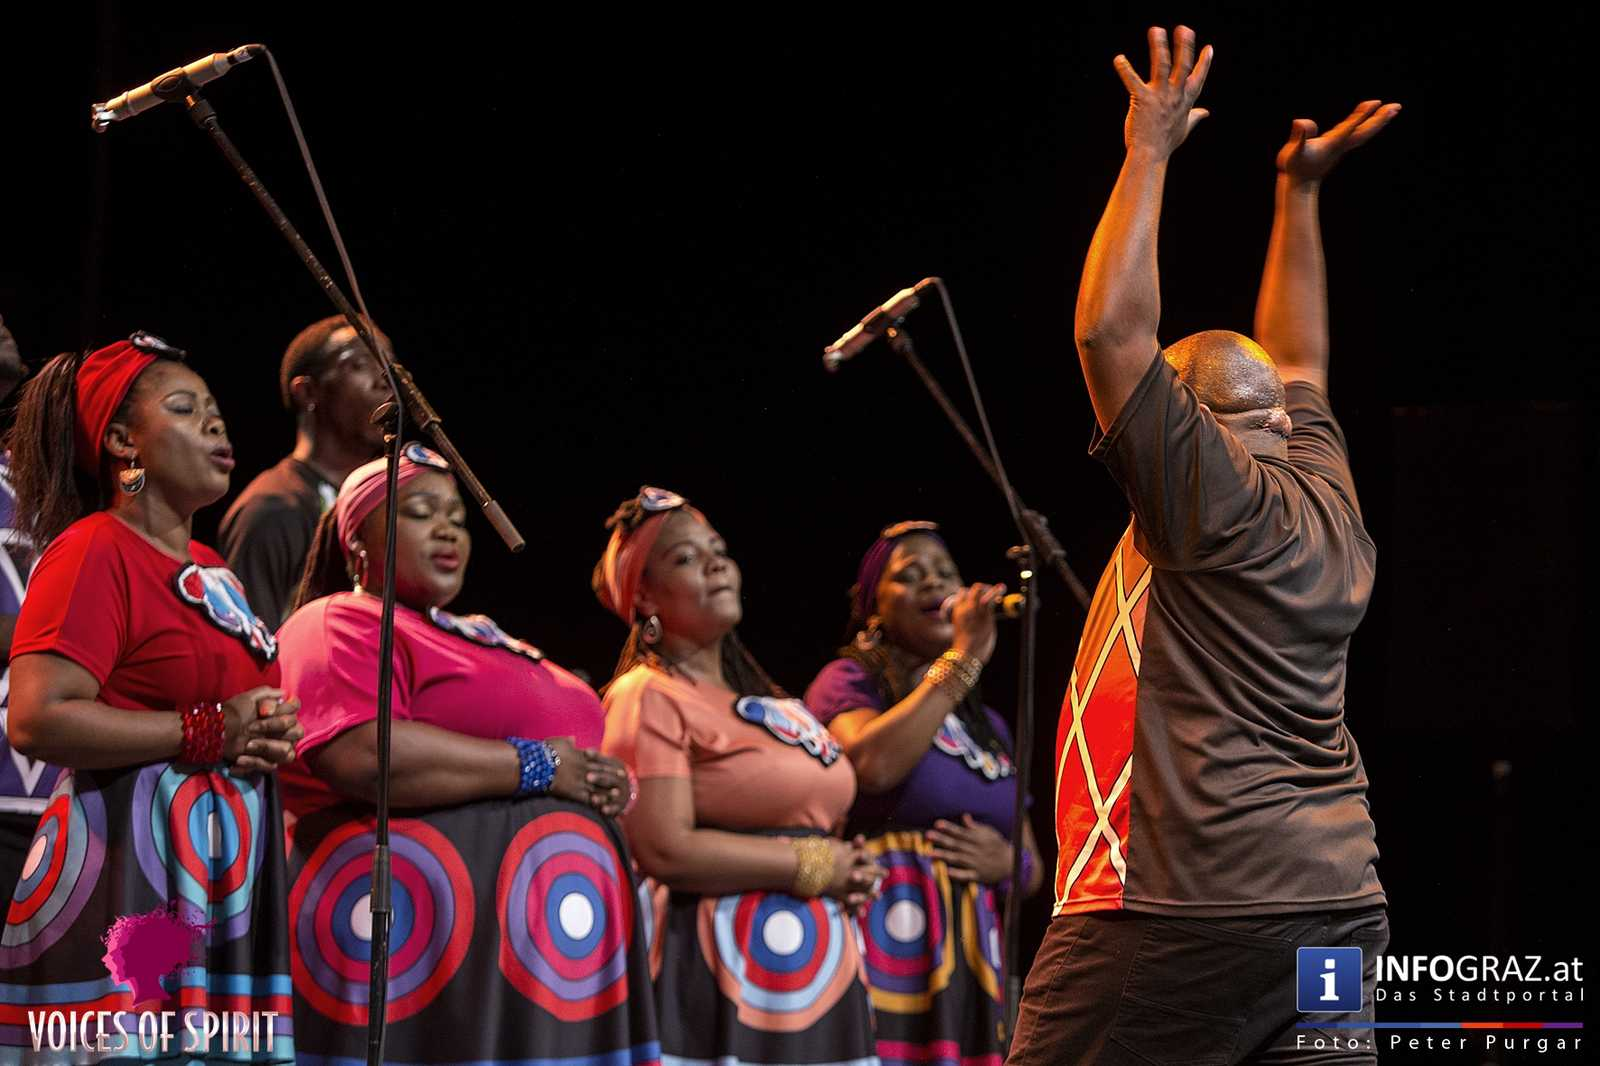 soweto gospel choir internationales chorfestival statdthalle graz voices of spirit eroeffnung festivals 2016 033